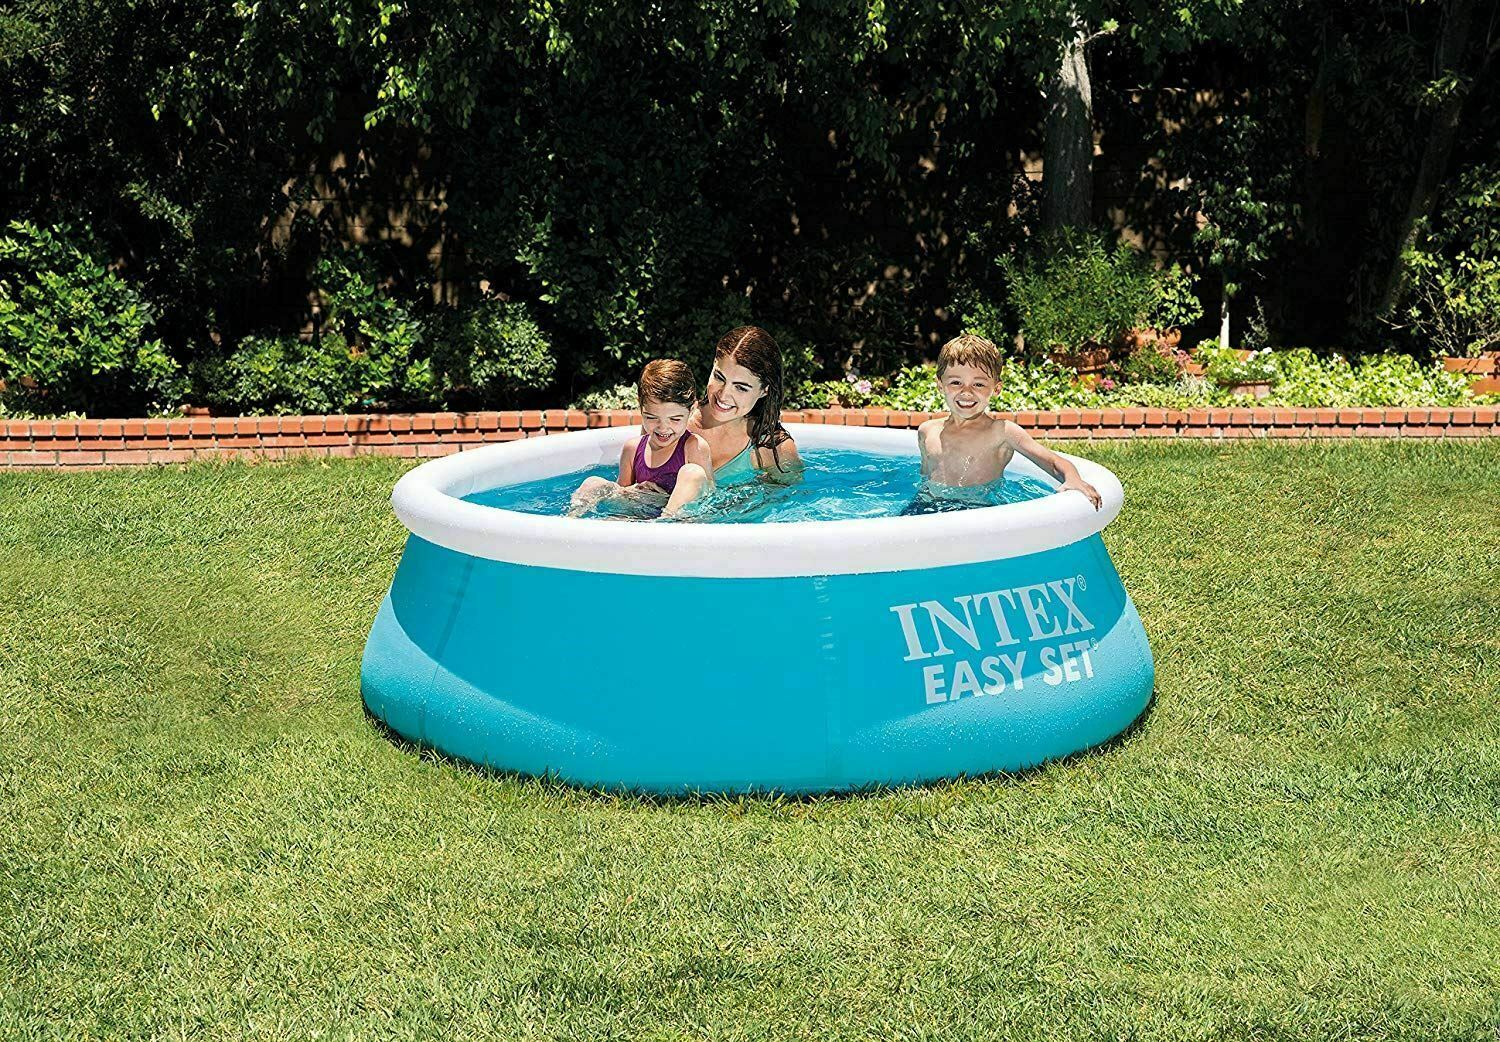 183cm x 51cm Intex Easy Set Swimming Pool Round Kids LARGE Family Without Pump